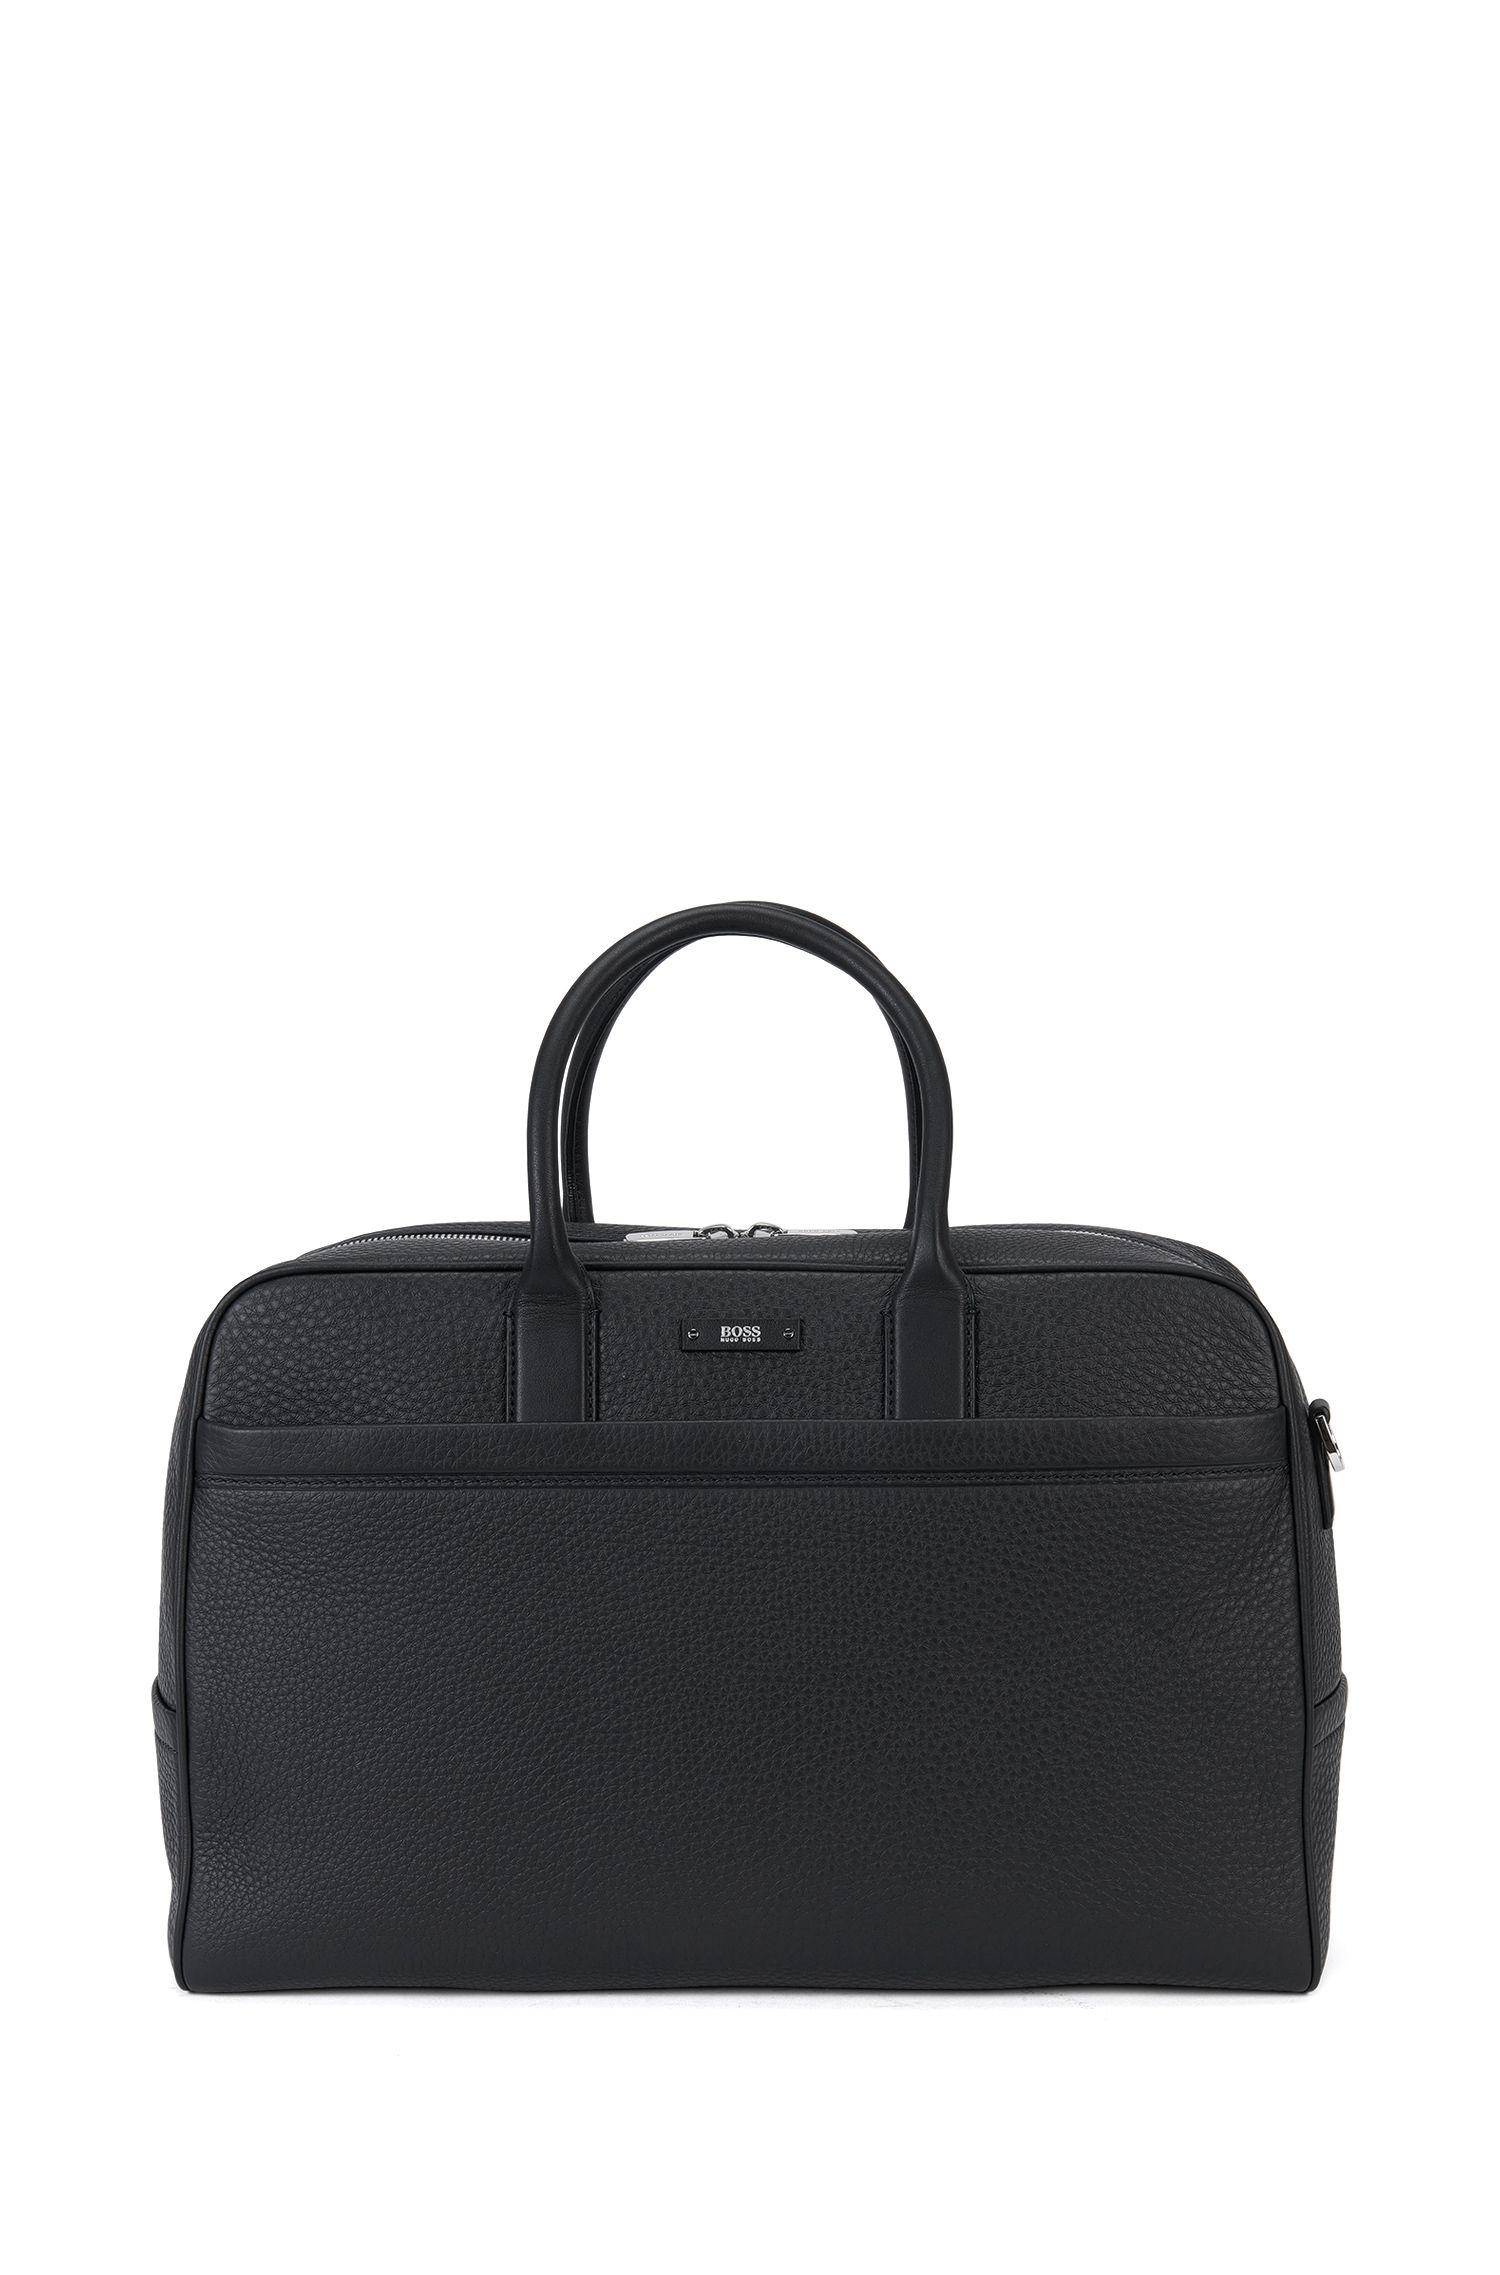 'Traveller Holdall' | Leather Weekender Bag, Detachable Shoulder Strap